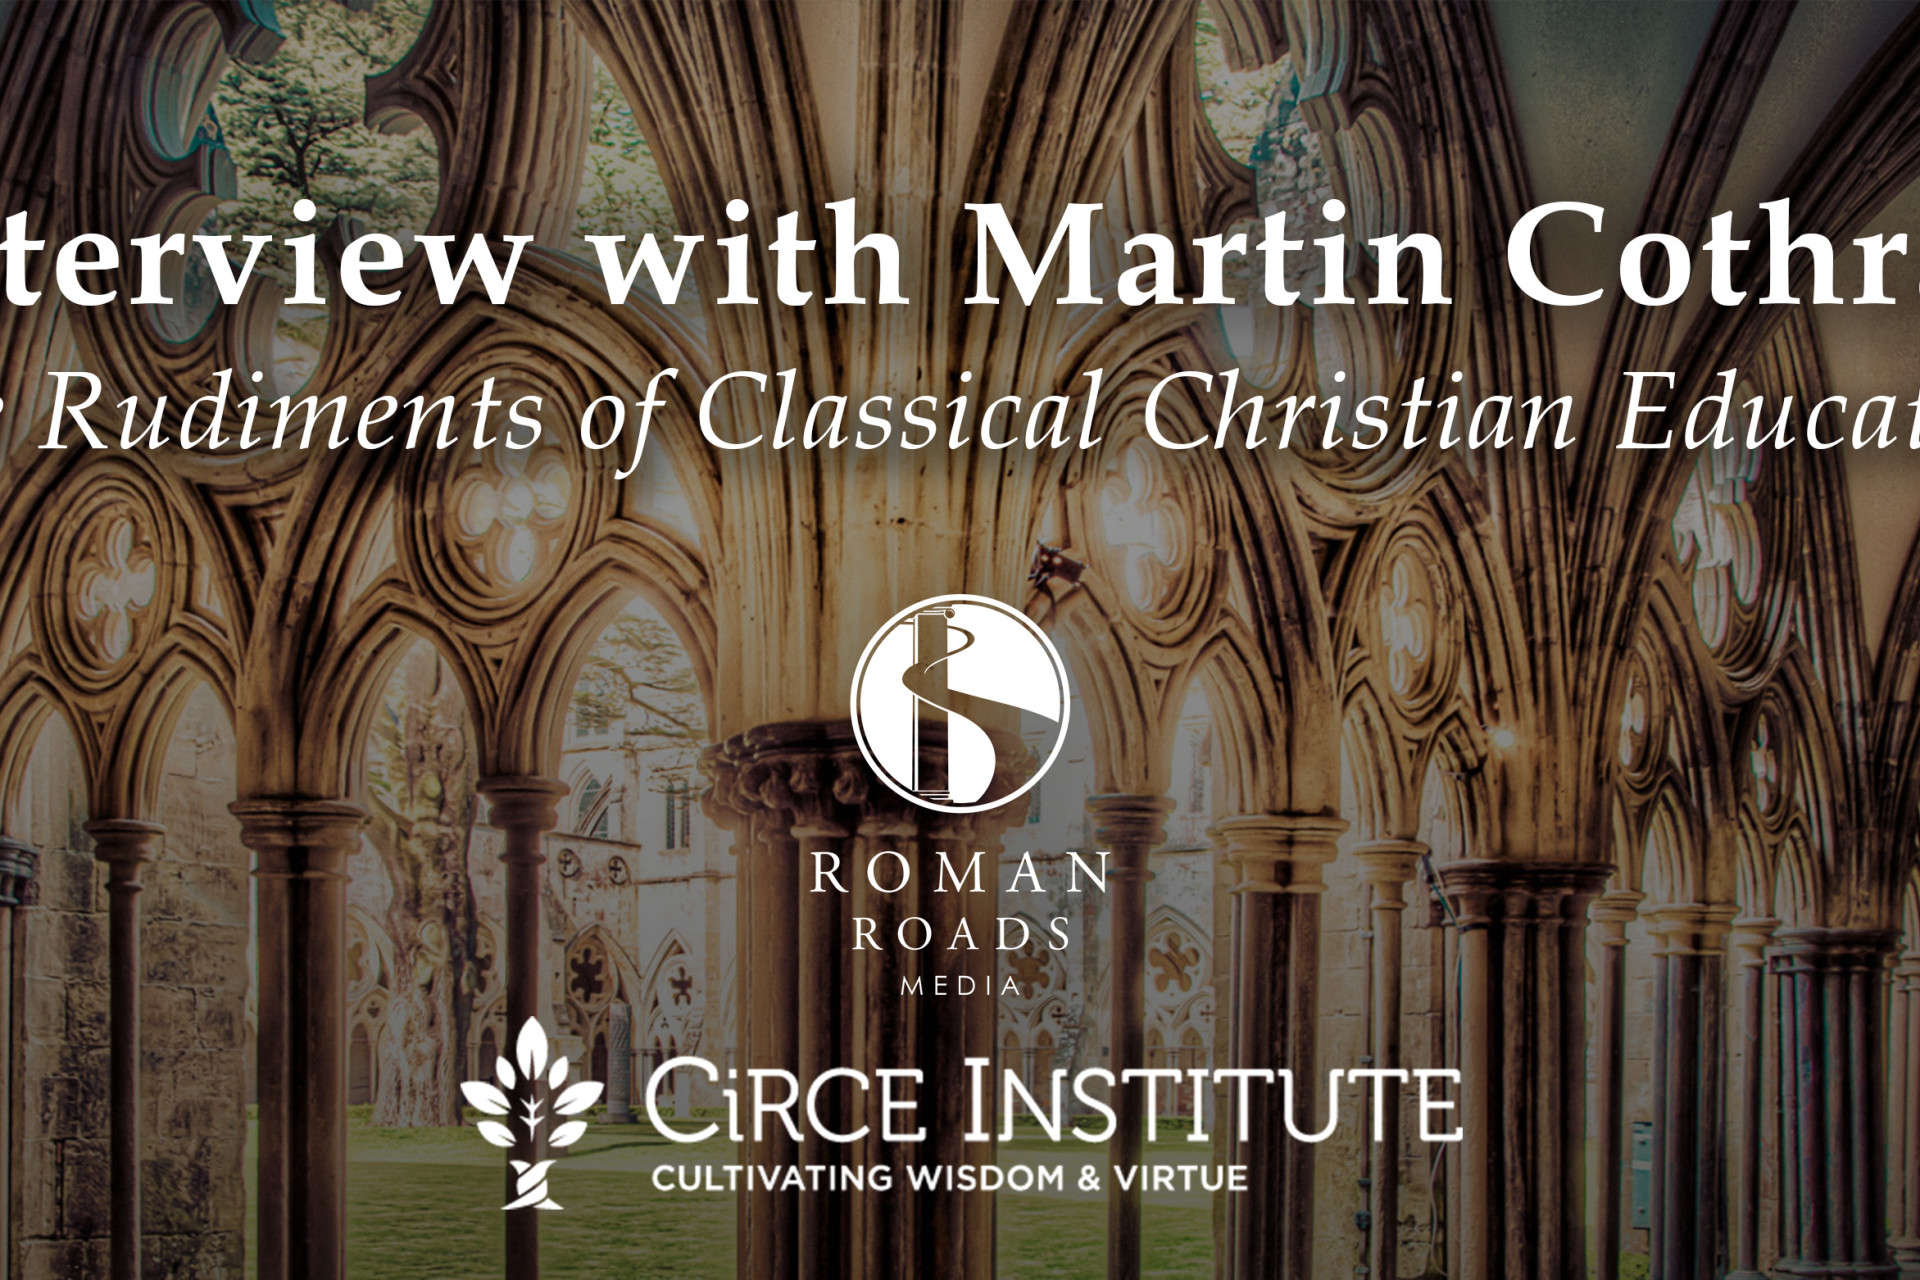 Interview with Martin Cothran